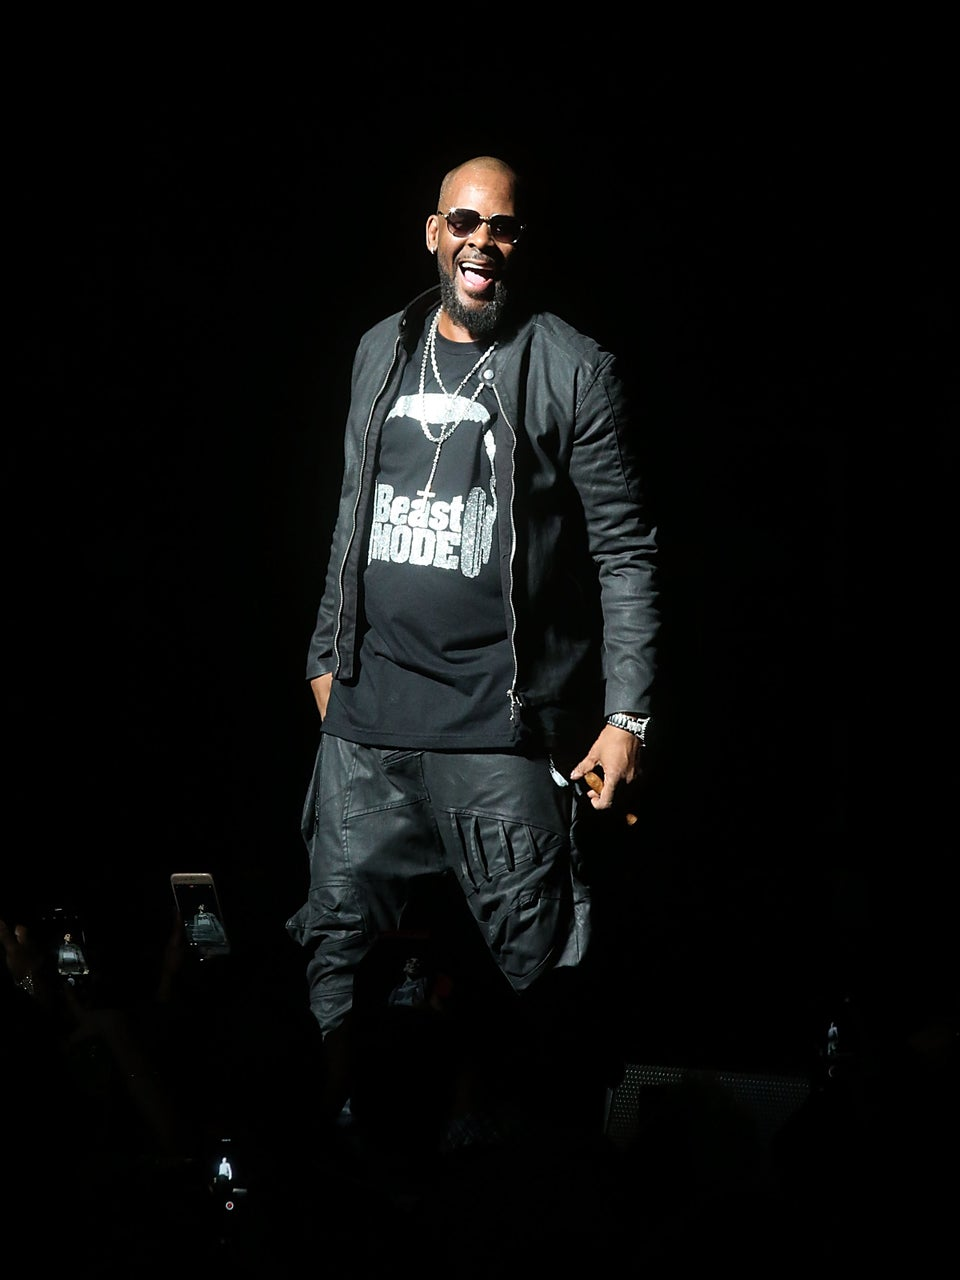 New Accuser Alleges R. Kelly Paid Her To Keep Quiet About Underage Sex